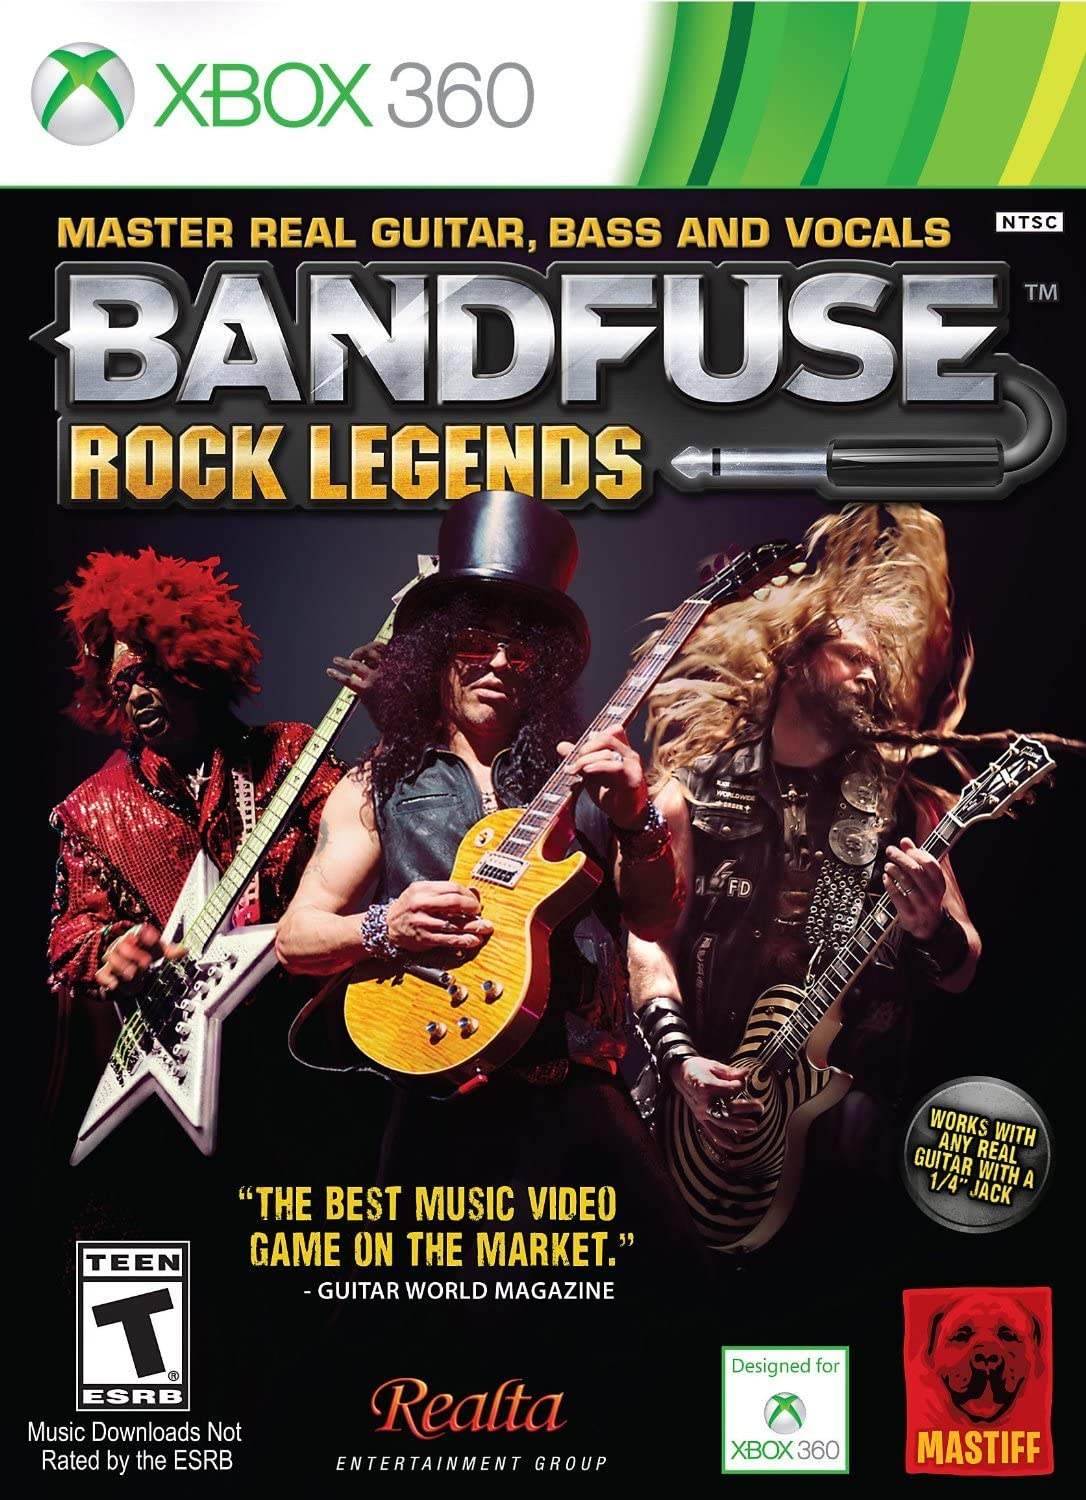 amazon com bandfuse rock legends artist pack xbox 360 steve rh amazon com bandfuse rock legends xbox 360 bandfuse xbox one